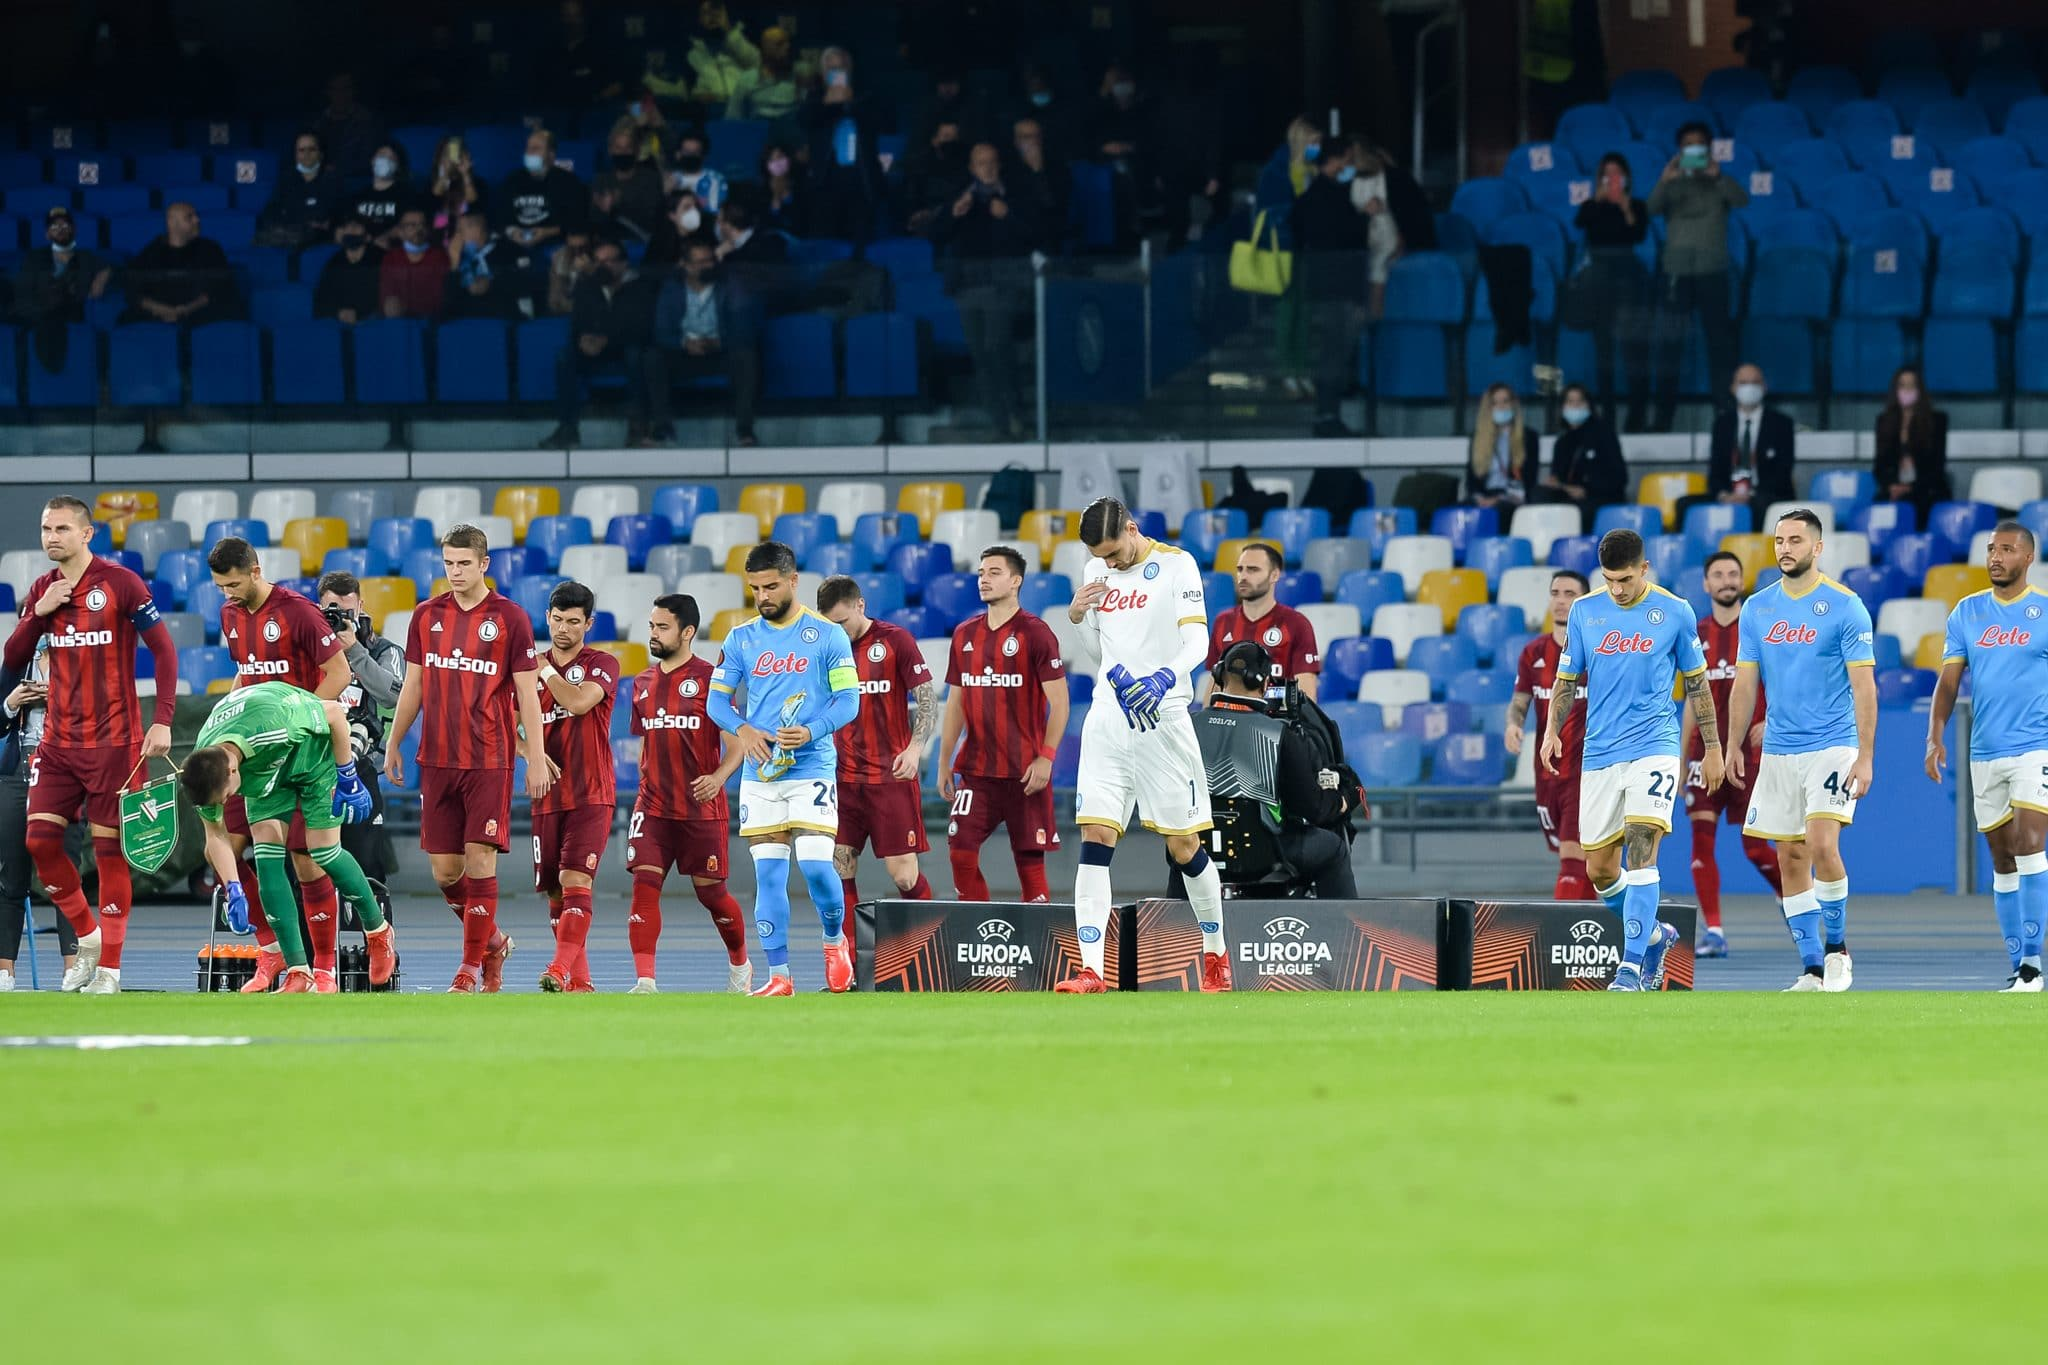 NAPLES, ITALY - OCTOBER 21: Players of Legia Warszawa and SSC Napoli walk towards the pitch during the Group C - UEFA Europa League match between SSC Napoli and Legia Warszawa at Stadio Diego Armando Maradona on October 21, 2021 in Naples, Italy (Photo by Ciro Santangelo/BSR Agency/Getty Images)